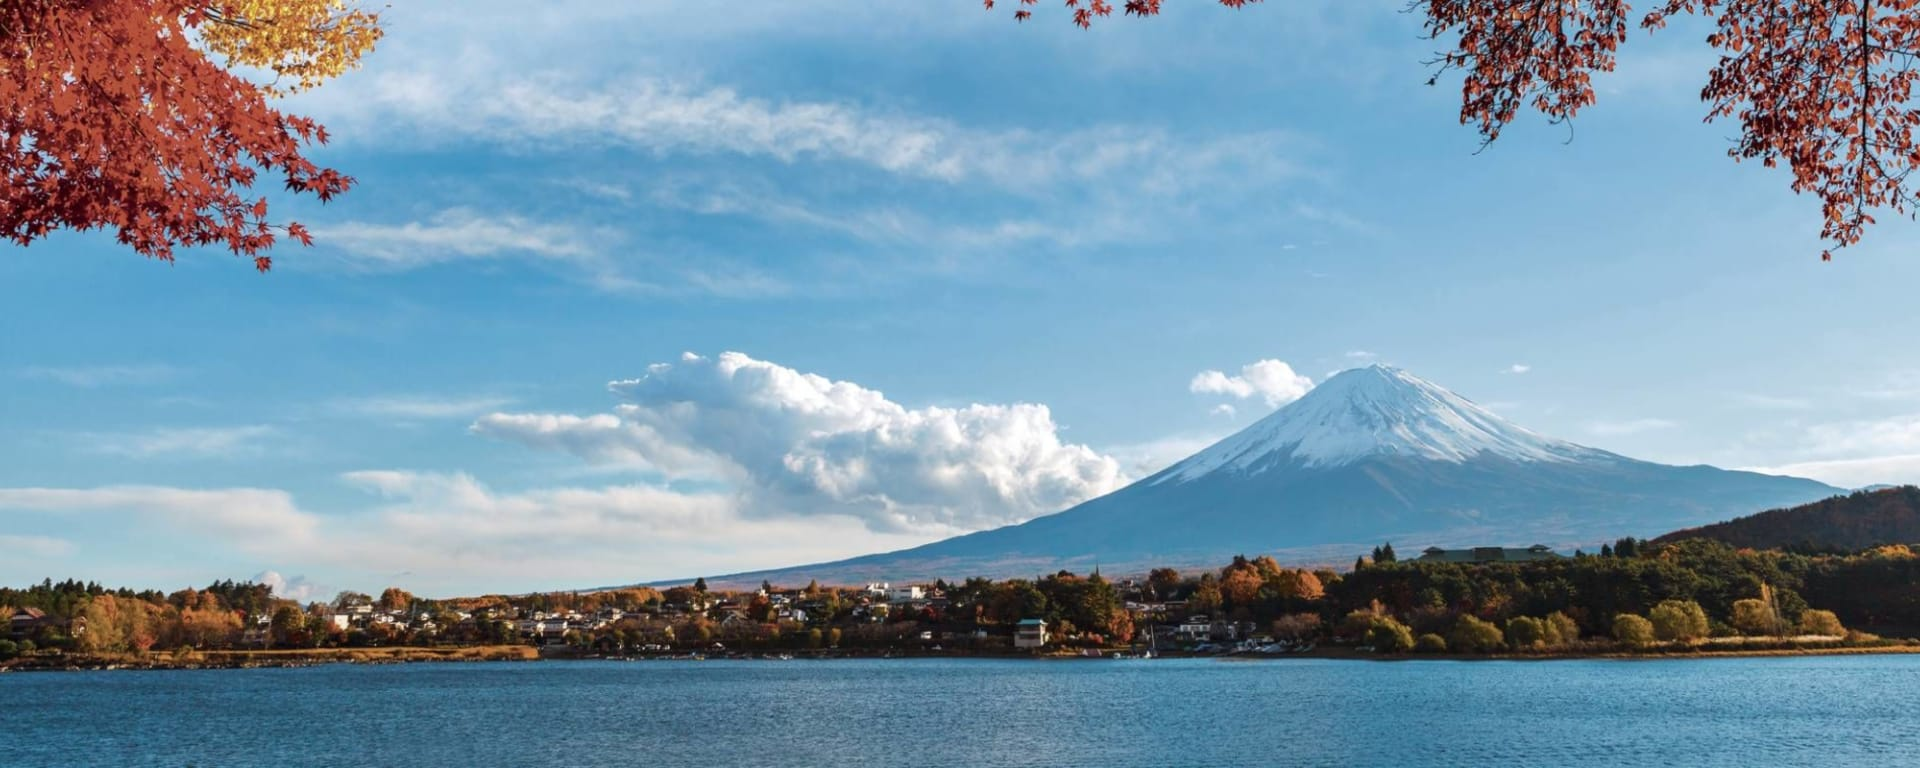 The Golden Route ab Tokio: Mount Fuji